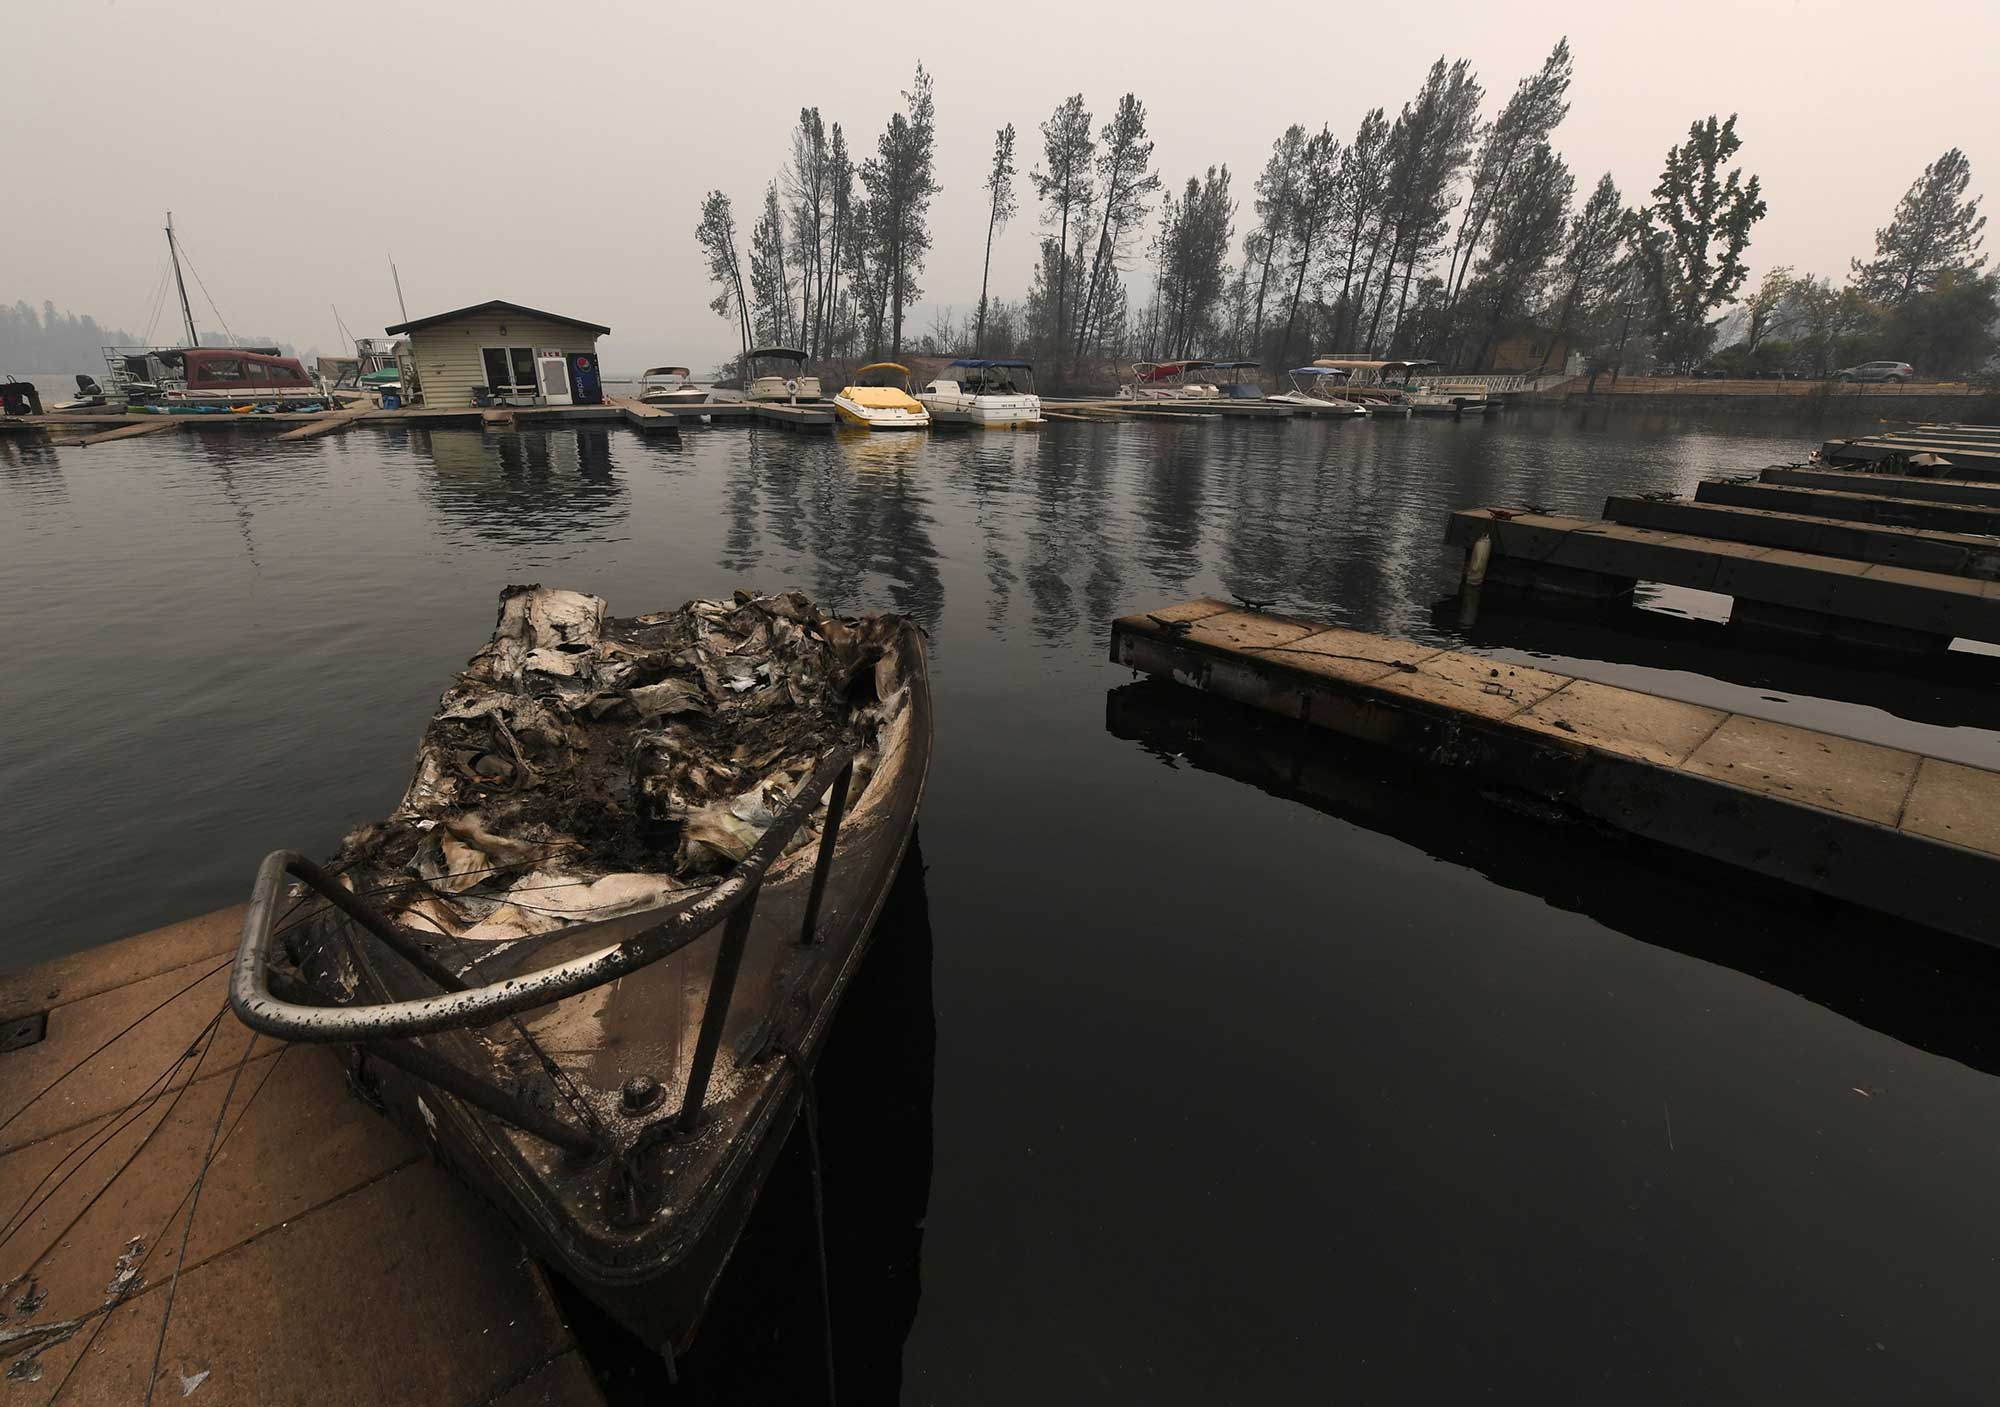 "<div class=""meta image-caption""><div class=""origin-logo origin-image none""><span>none</span></div><span class=""caption-text"">A burnt out boat sits at a marina on Whiskeytown Lake after damage from the Carr fire near Redding, California, on July 30, 2018. (MARK RALSTON/AFP/Getty Images)</span></div>"